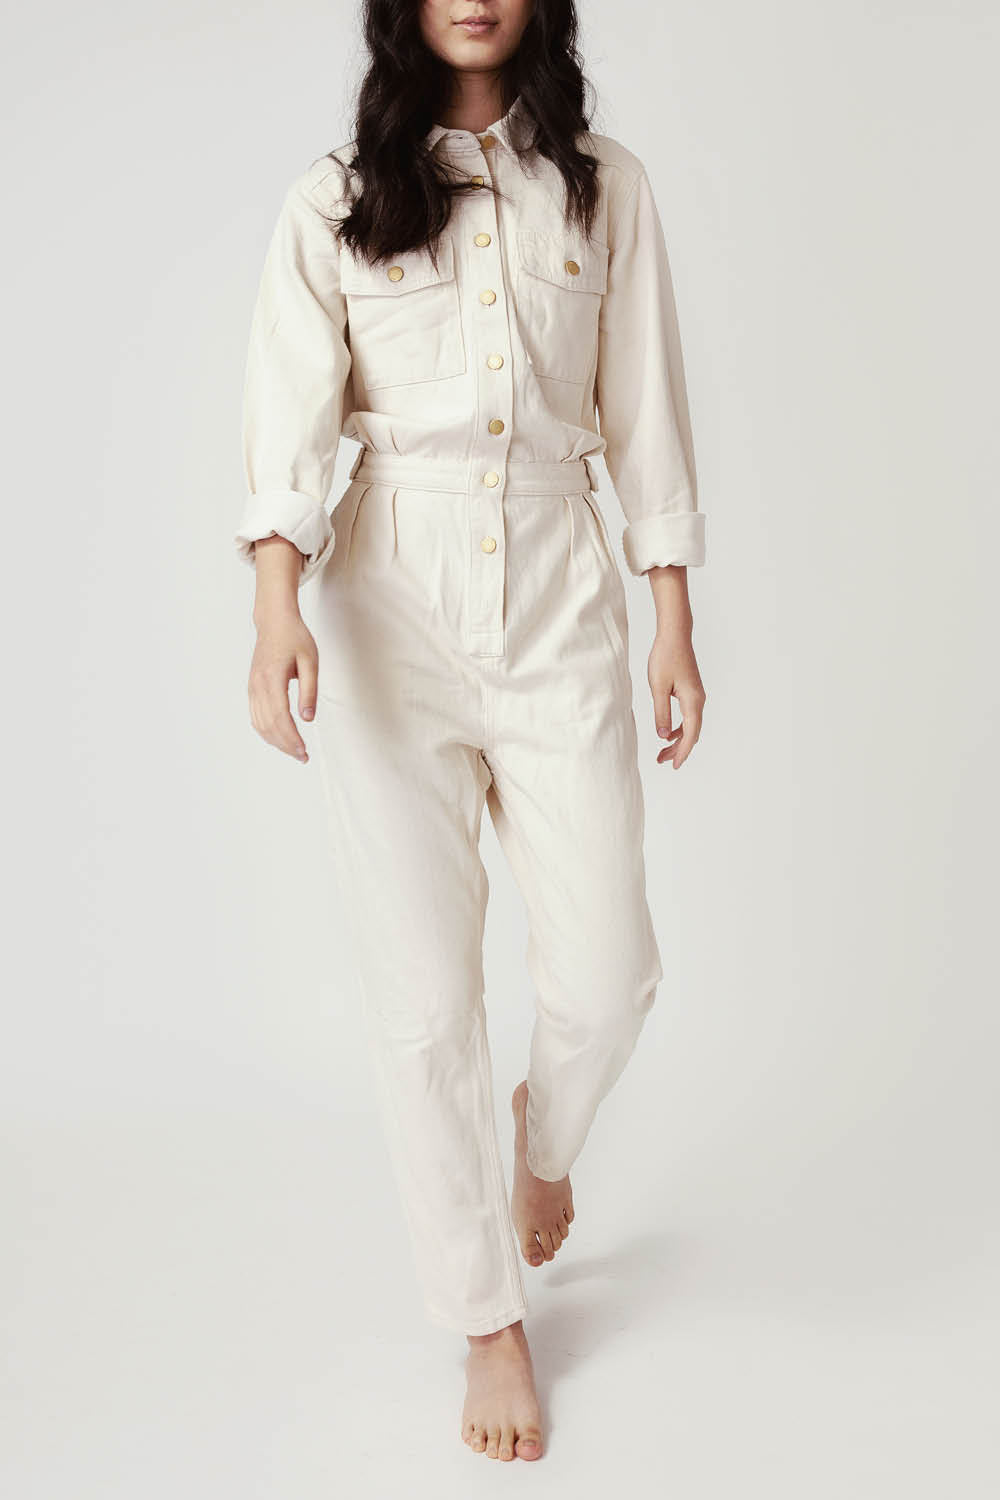 Jumpsuit in Off White